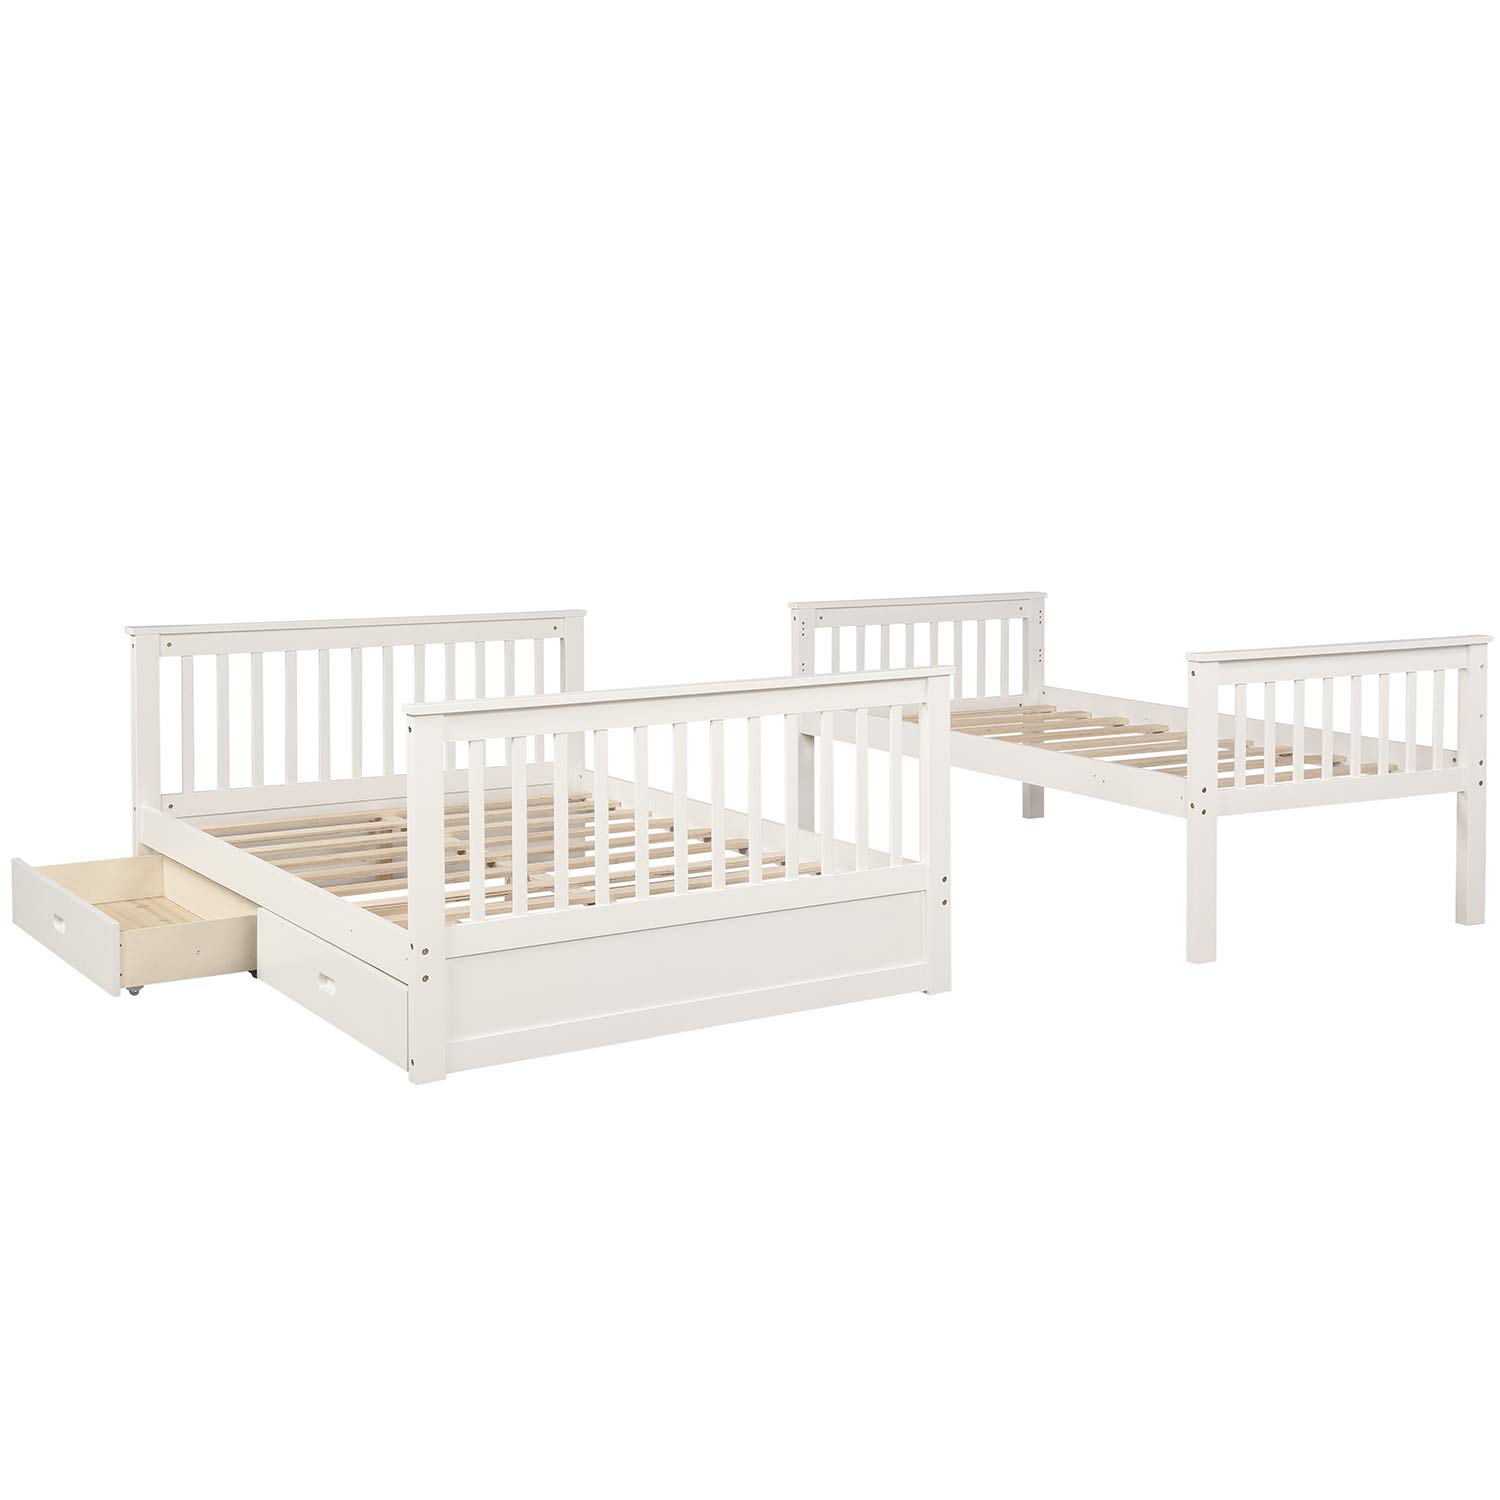 Twin-Over-Full Bunk Bed Solid Wood Bunk Bed with Ladders and Two Storage Drawers Espresso